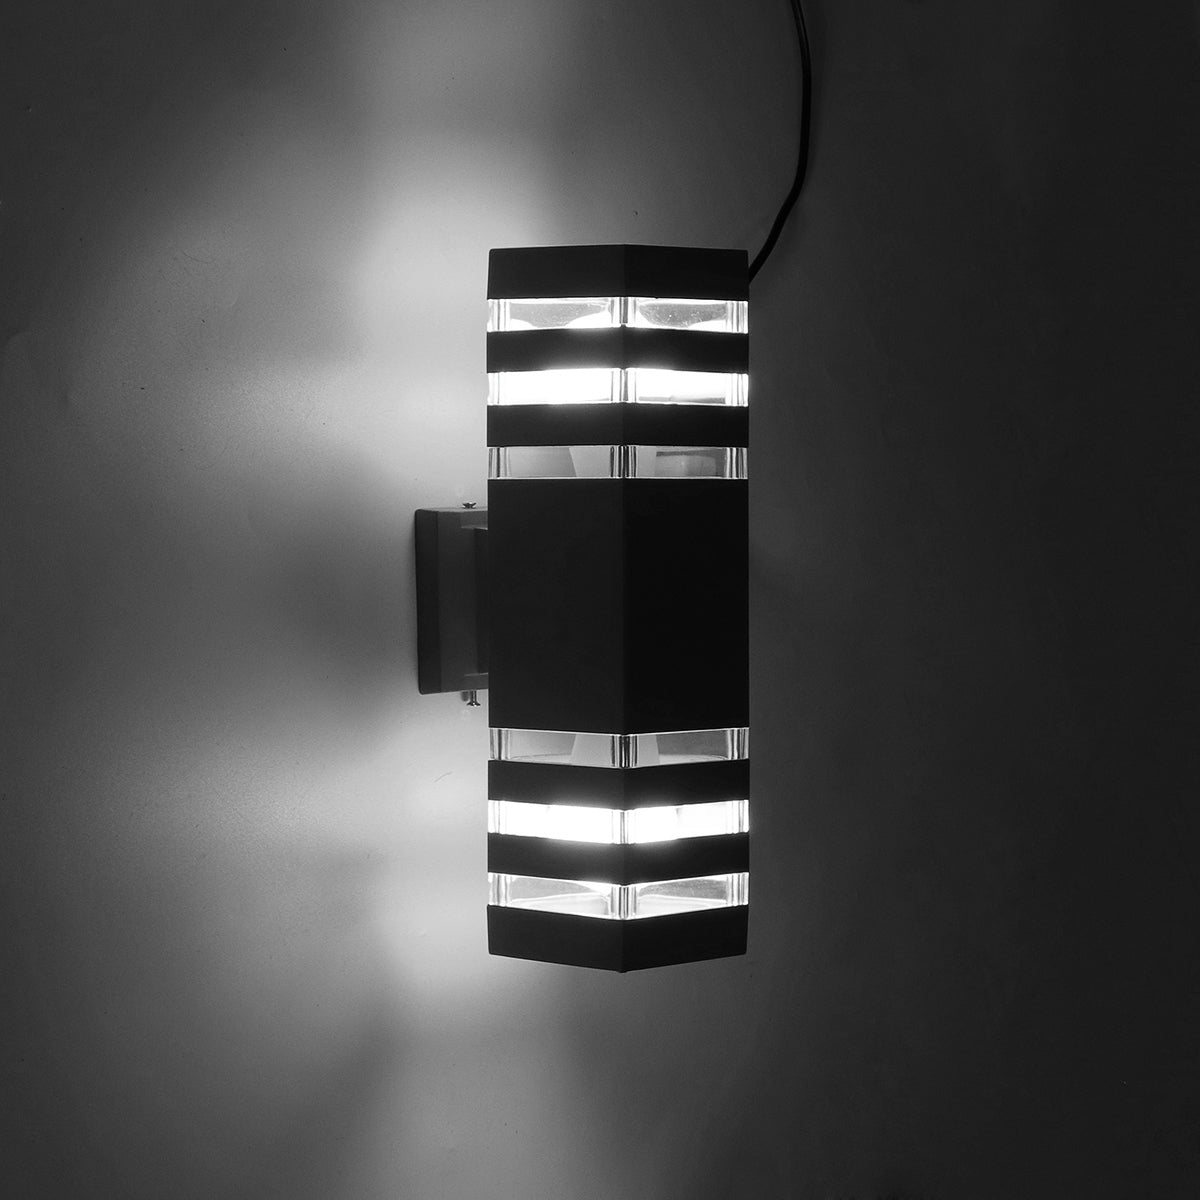 LED Wall Sconce Waterproof Porch Light,Black/Silver Modern Waterproof Wall Lamp,IP65 Waterproof Outdoor Up/Down Light